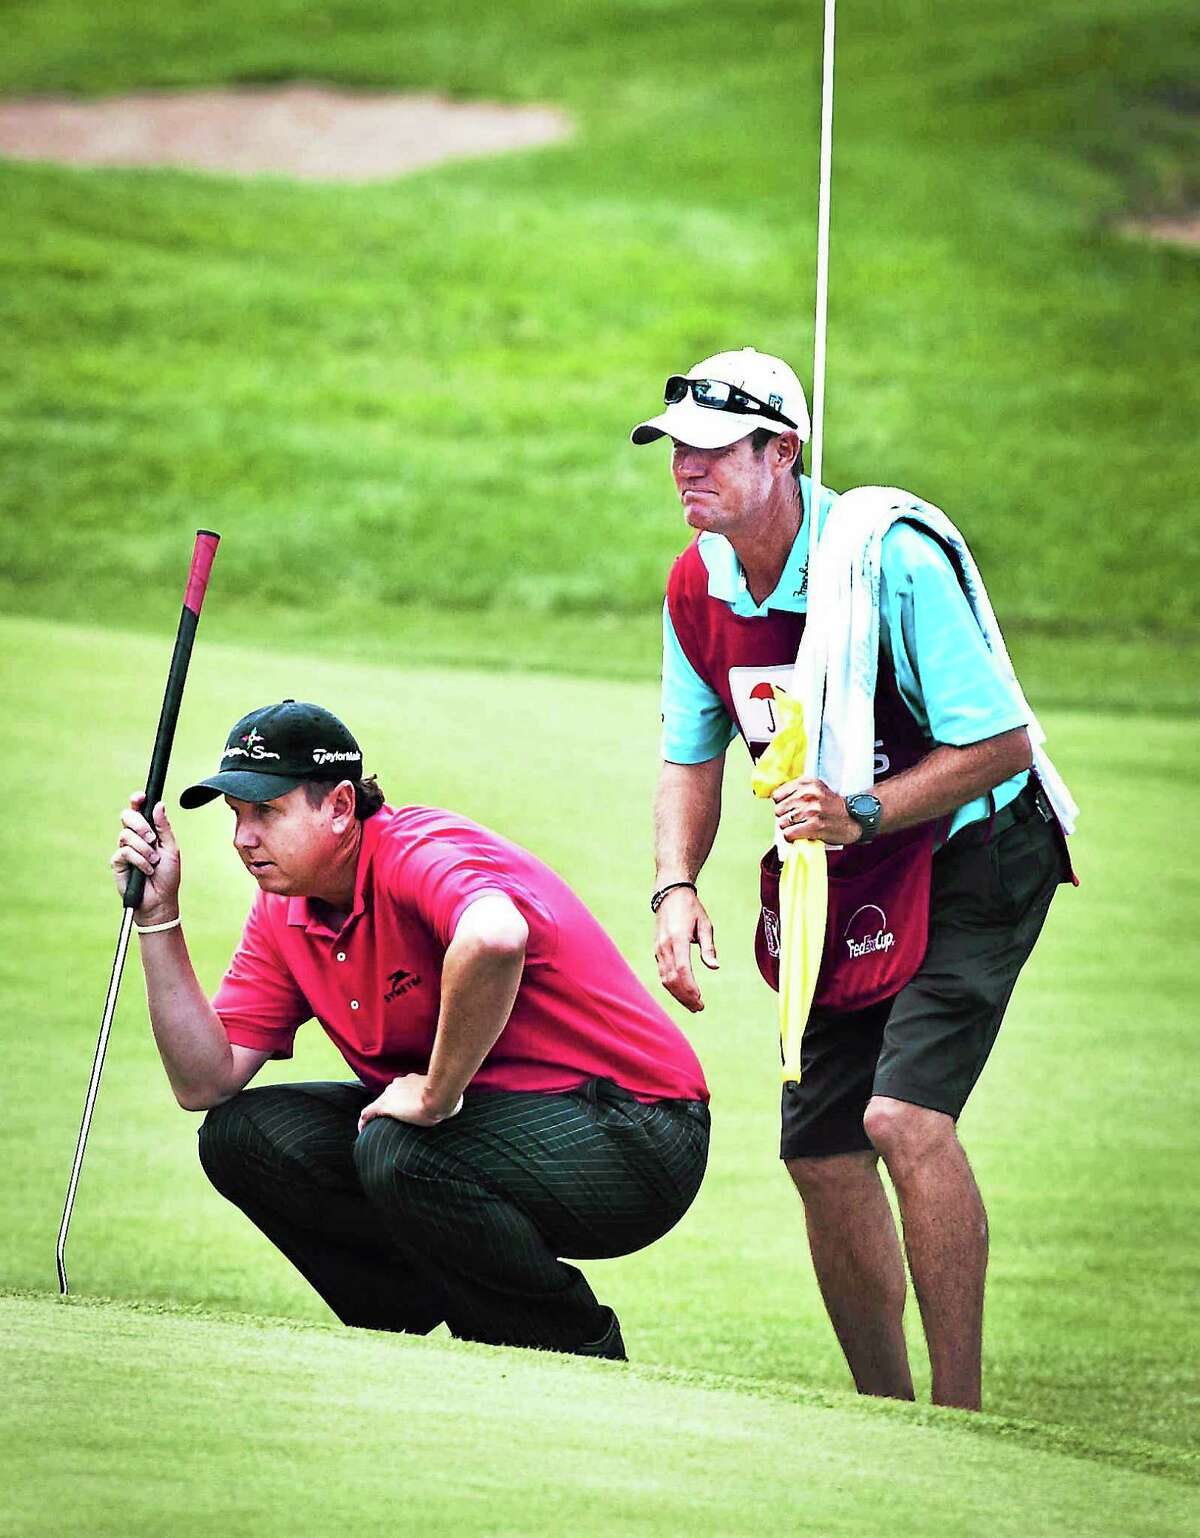 J.J. Henry and his caddie line up a putt on the 17th hole at last year's Travelers Championship.